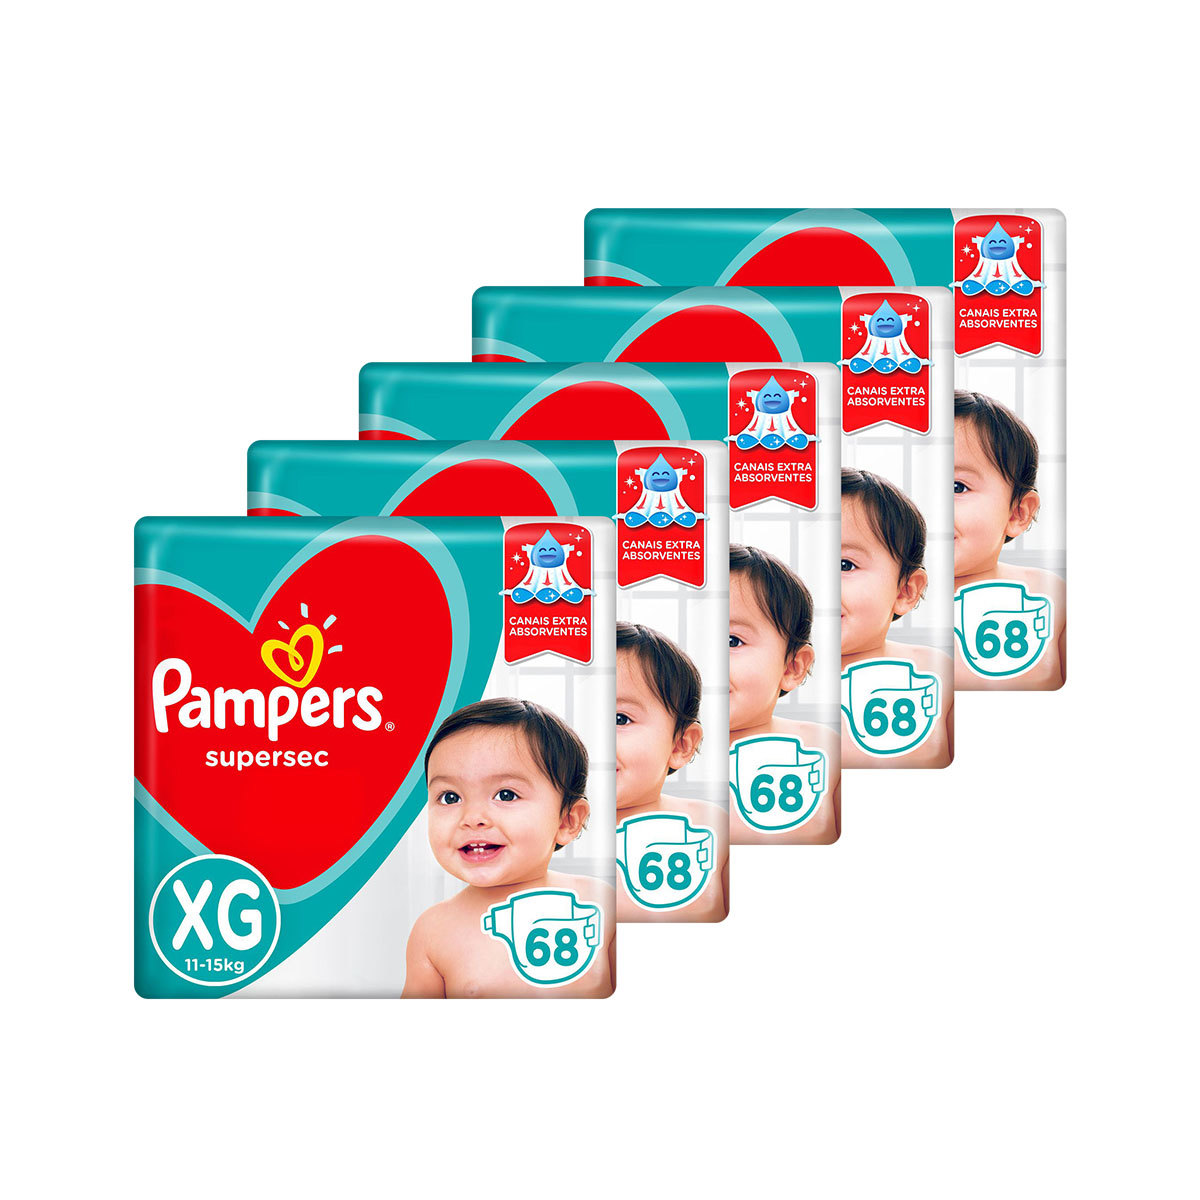 Kit De Fraldas Pampers Xg Supersec Jumbo 340 Unidades